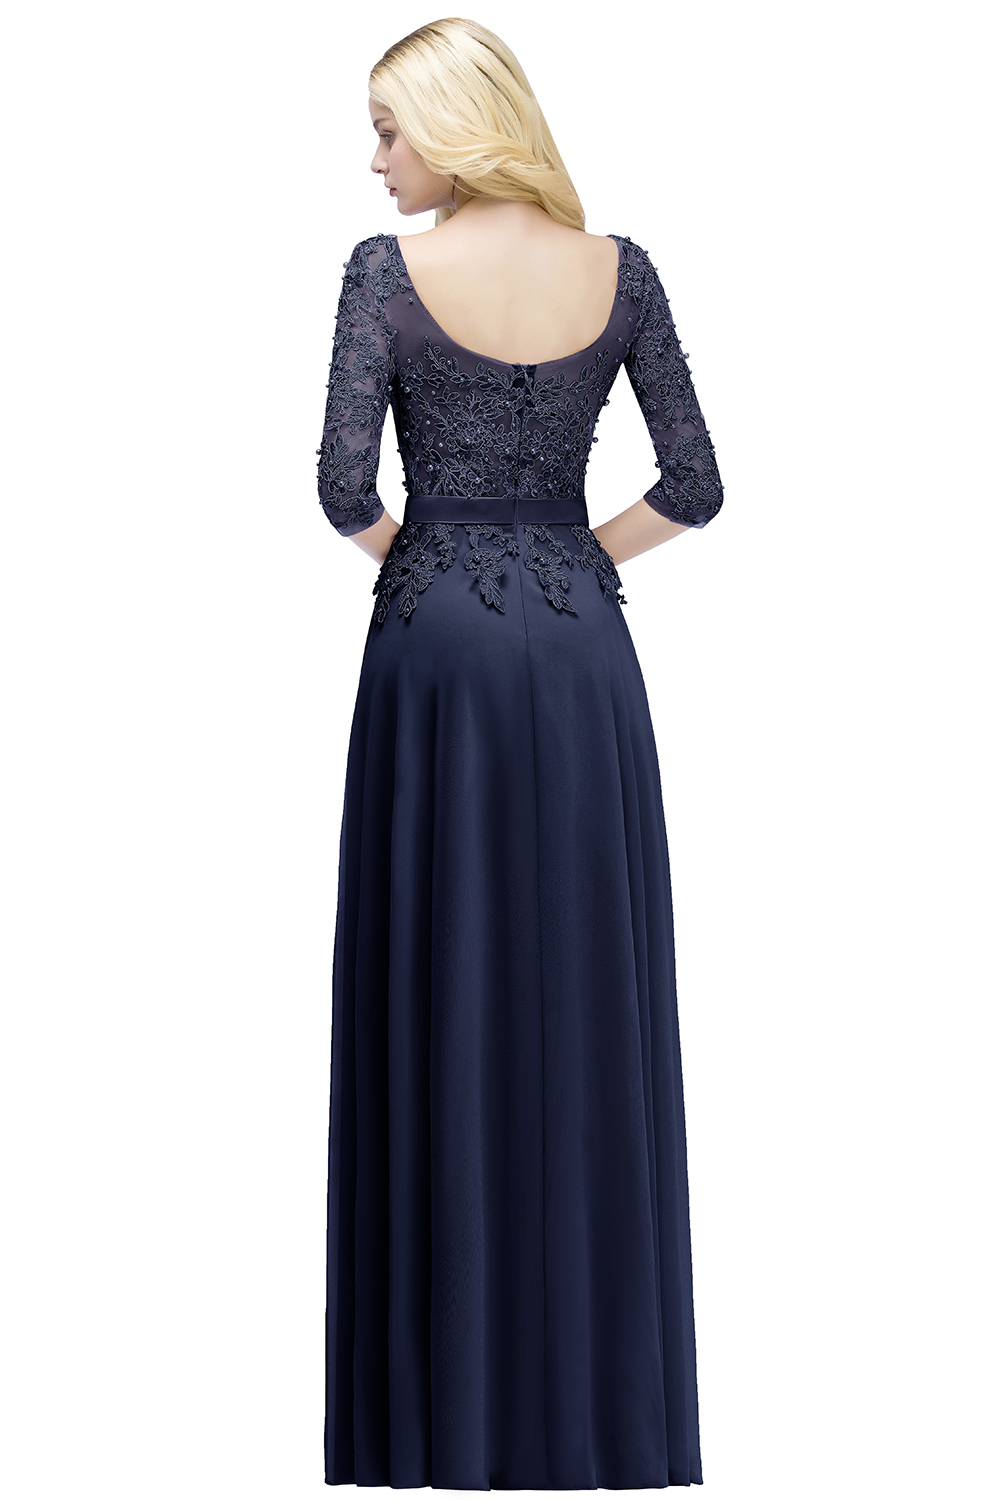 2019 Elegant Prom Dresses with sleeves Navy Blue A Line Party Dresses Vestido De Festa Beading pink Long prom dress Formal Gowns